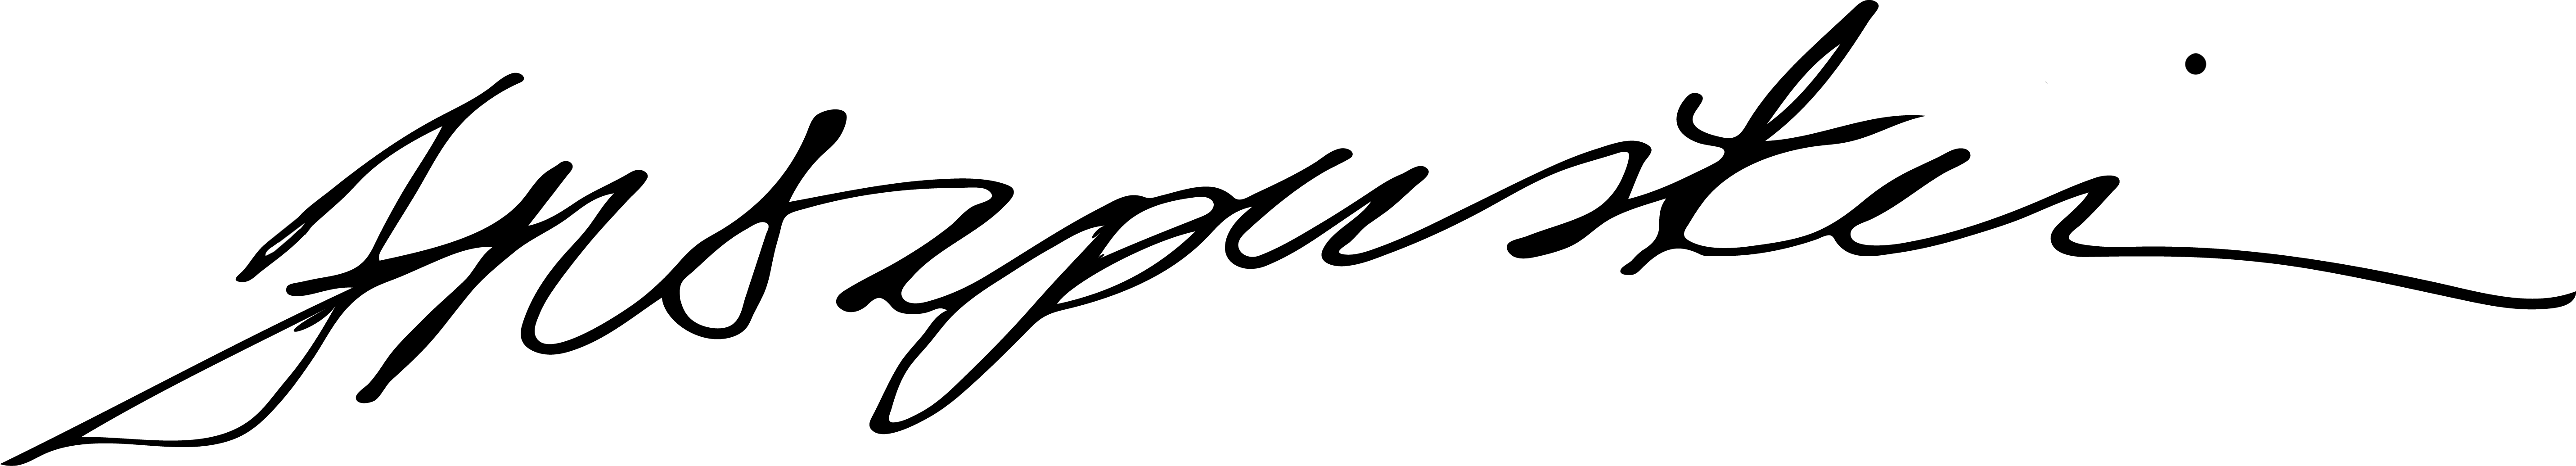 Fran Saperstein Signature